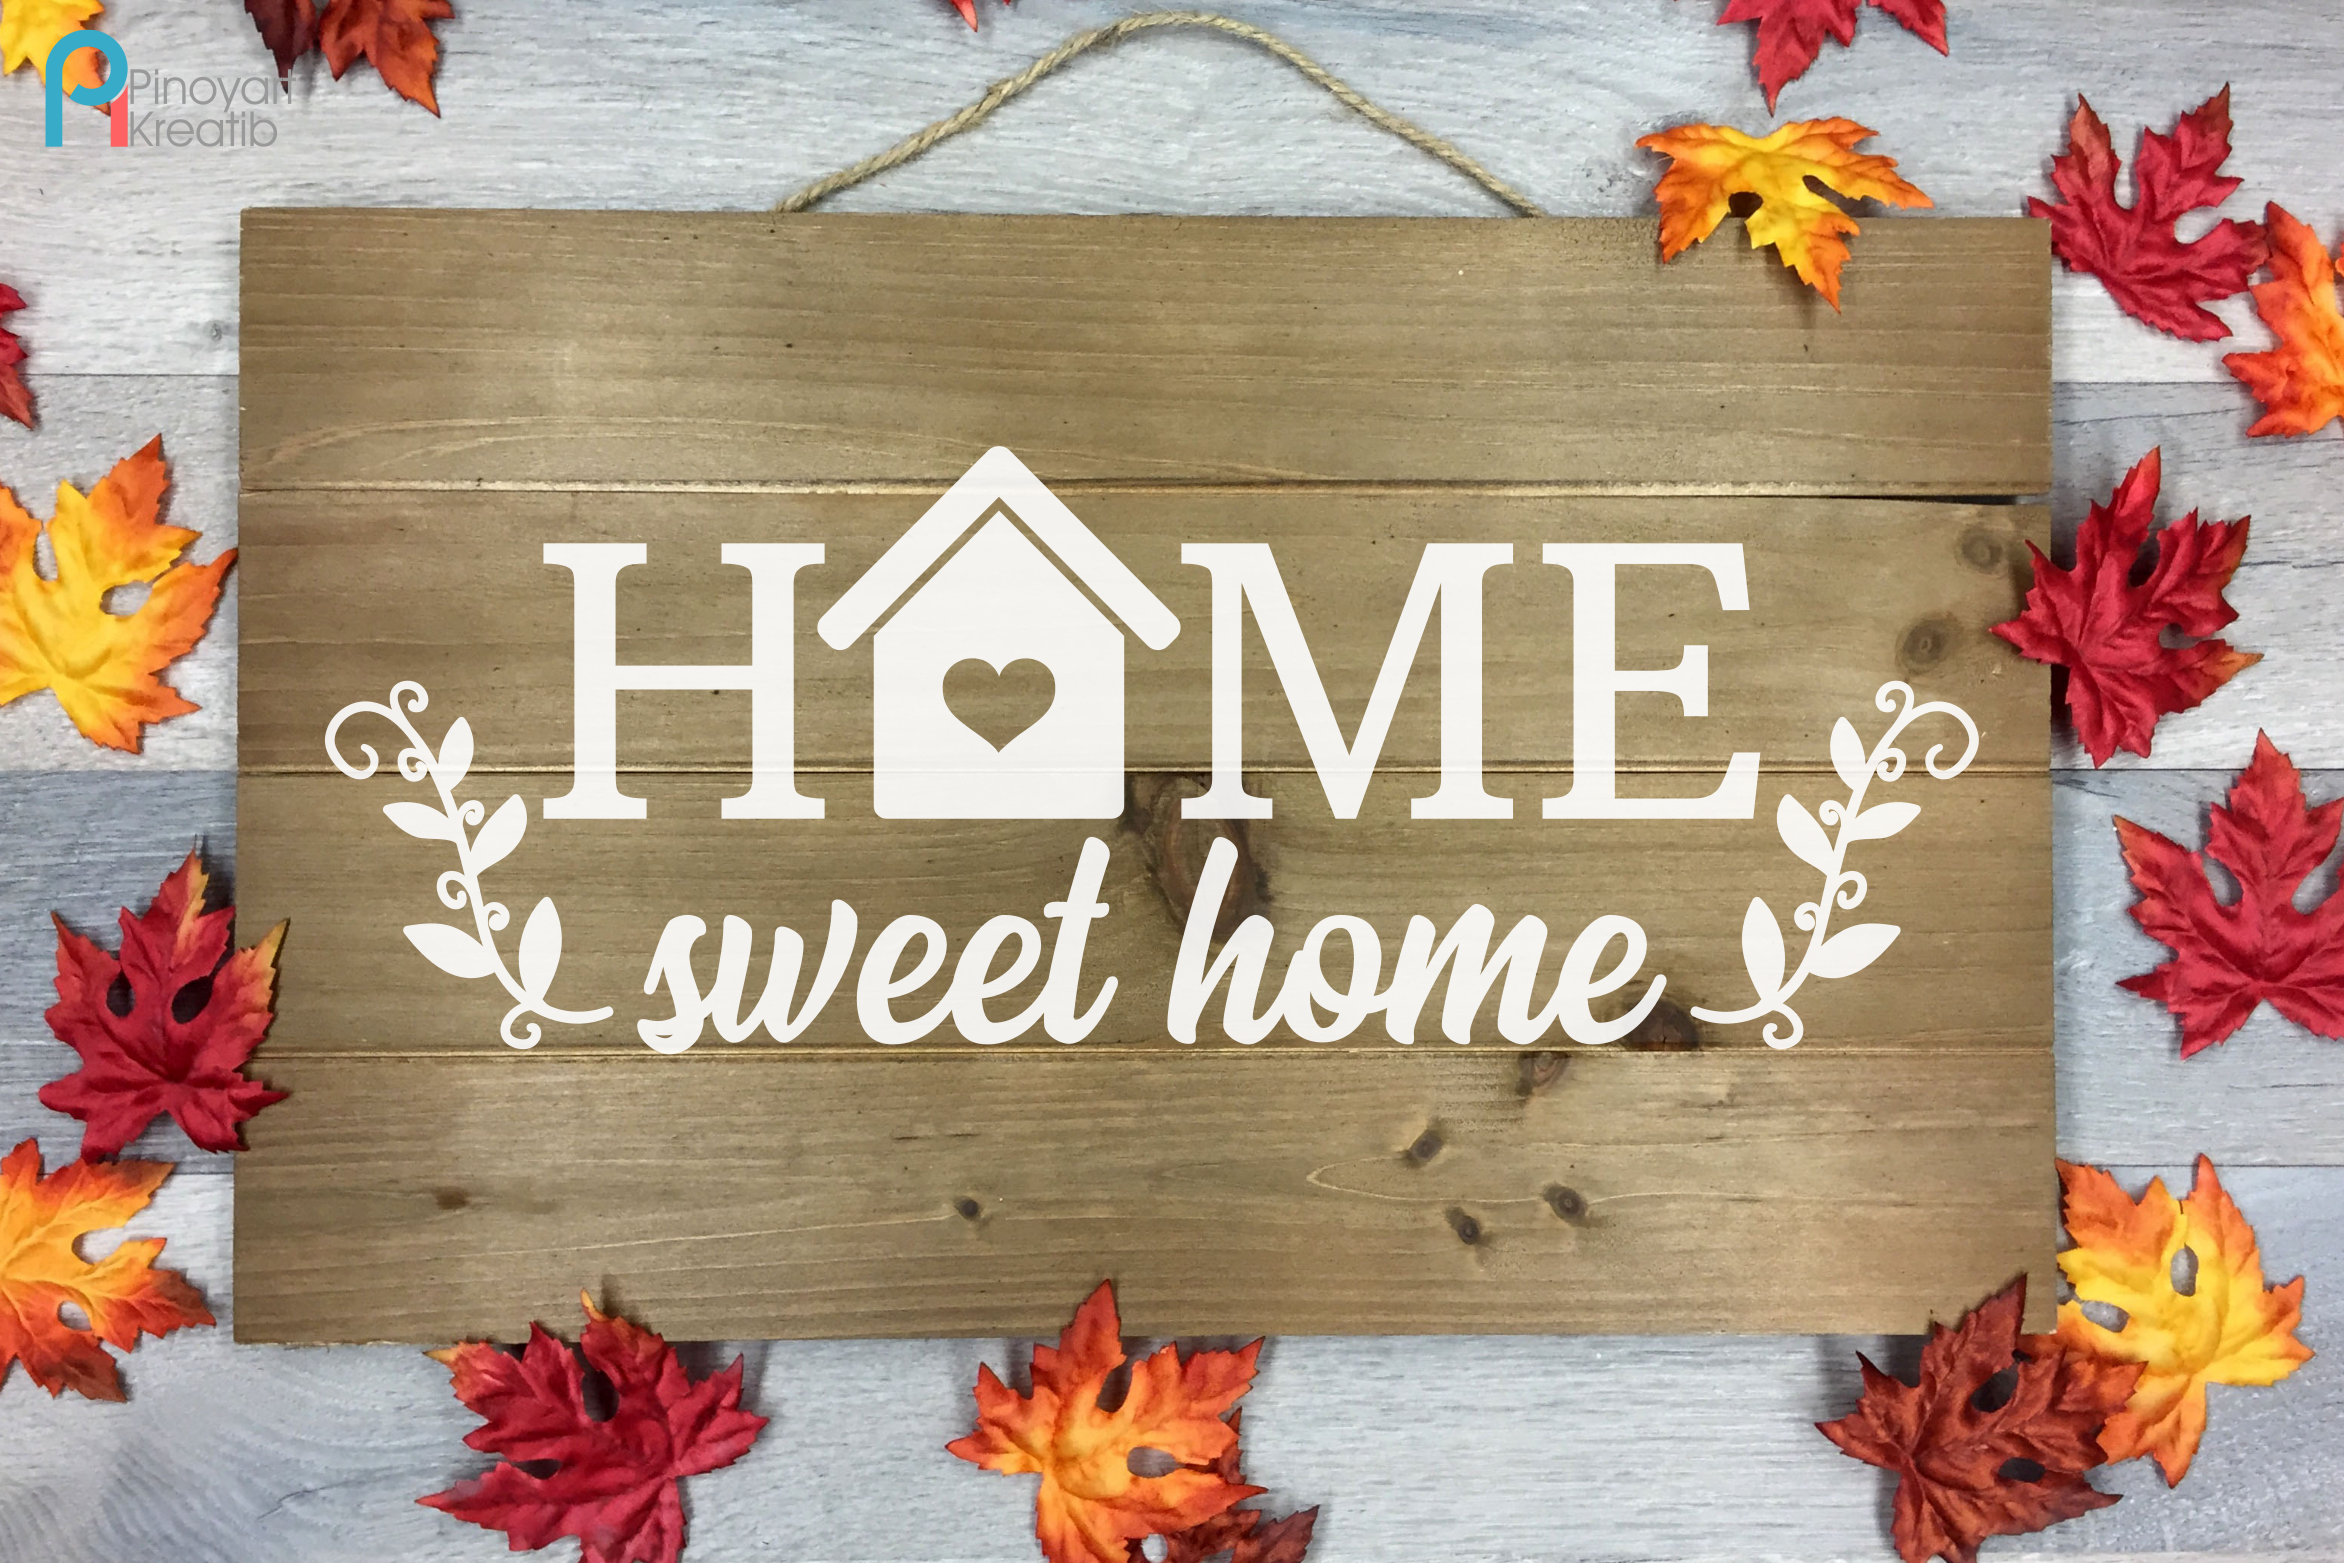 Download Free Home Sweet Home Graphic By Pinoyartkreatib Creative Fabrica for Cricut Explore, Silhouette and other cutting machines.